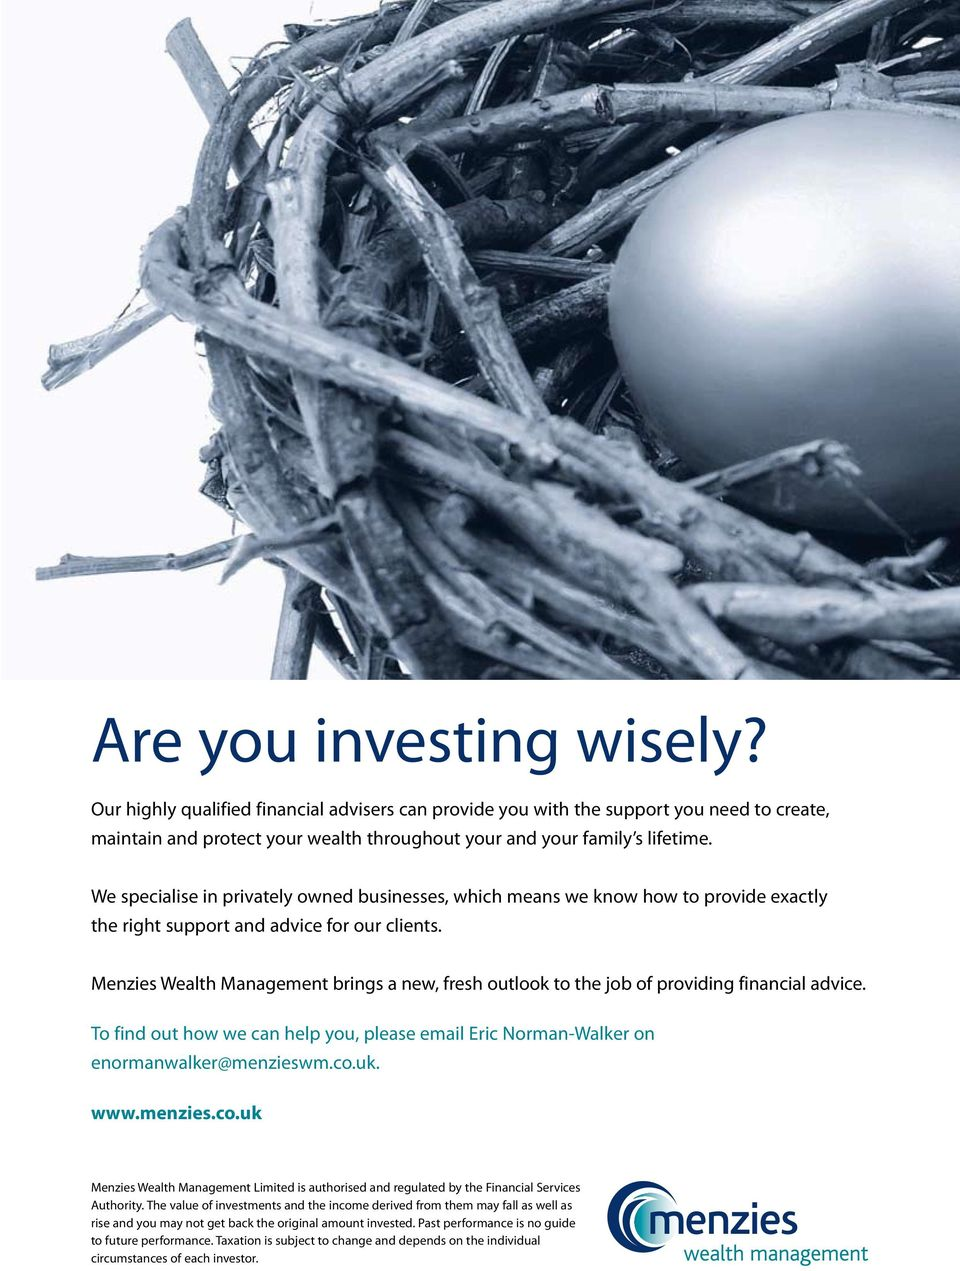 Menzies Wealth Management brings a new, fresh outlook to the job of providing financial advice. To find out how we can help you, please email Eric Norman-Walker on enormanwalker@menzieswm.co.uk. www.